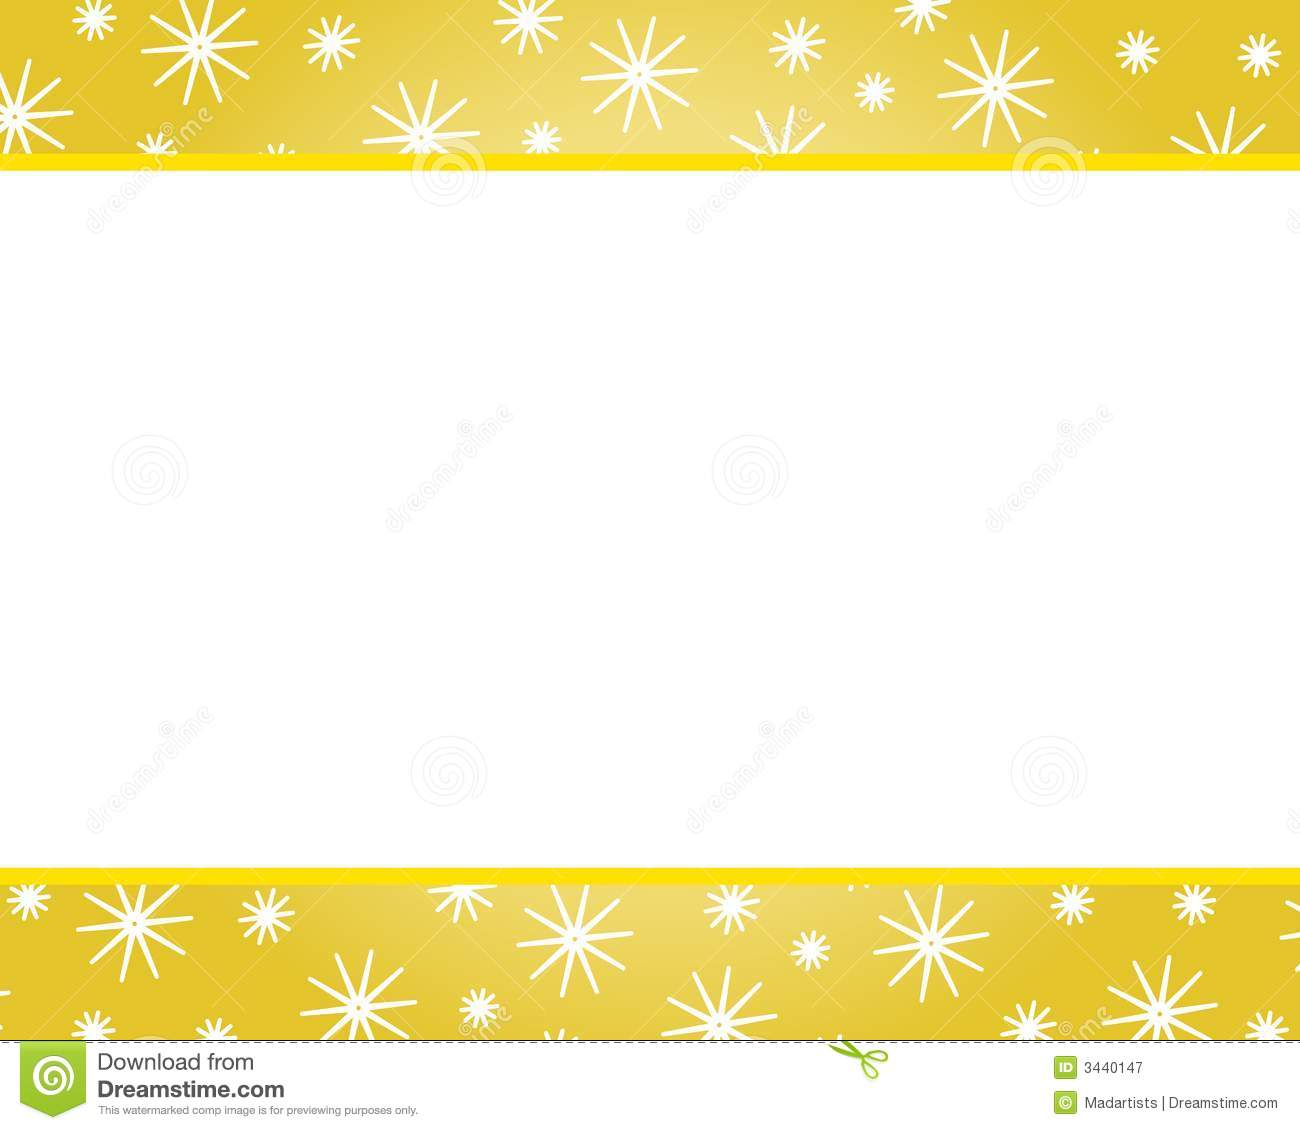 Gold Christmas Border Clipart - Clipart Suggest